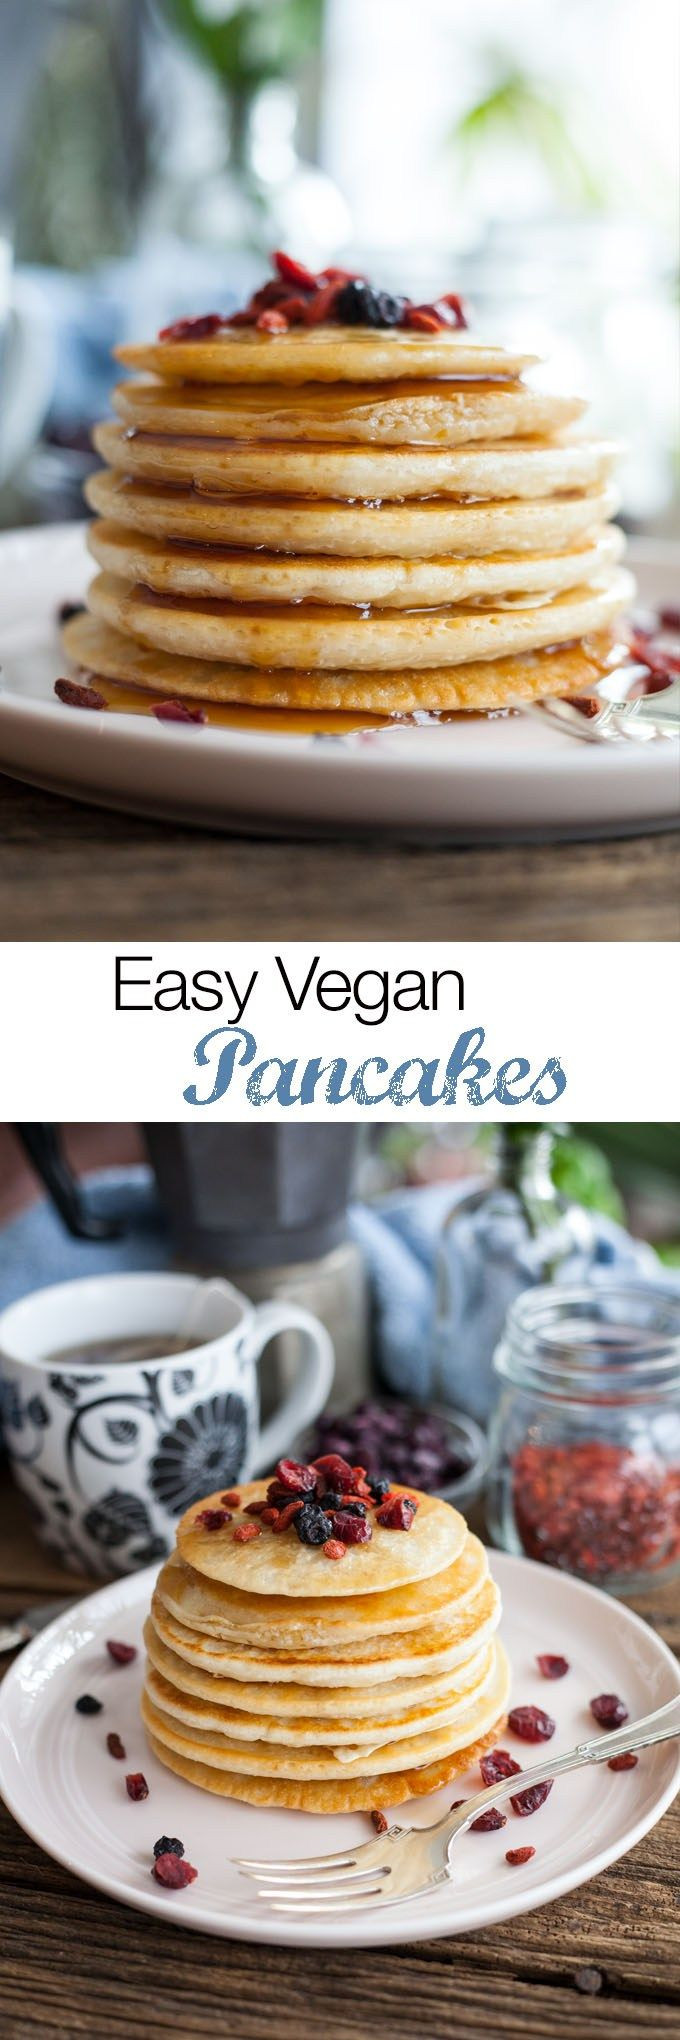 Vegetarian Breakfast Ideas No Eggs  Best 25 No egg breakfast ideas on Pinterest